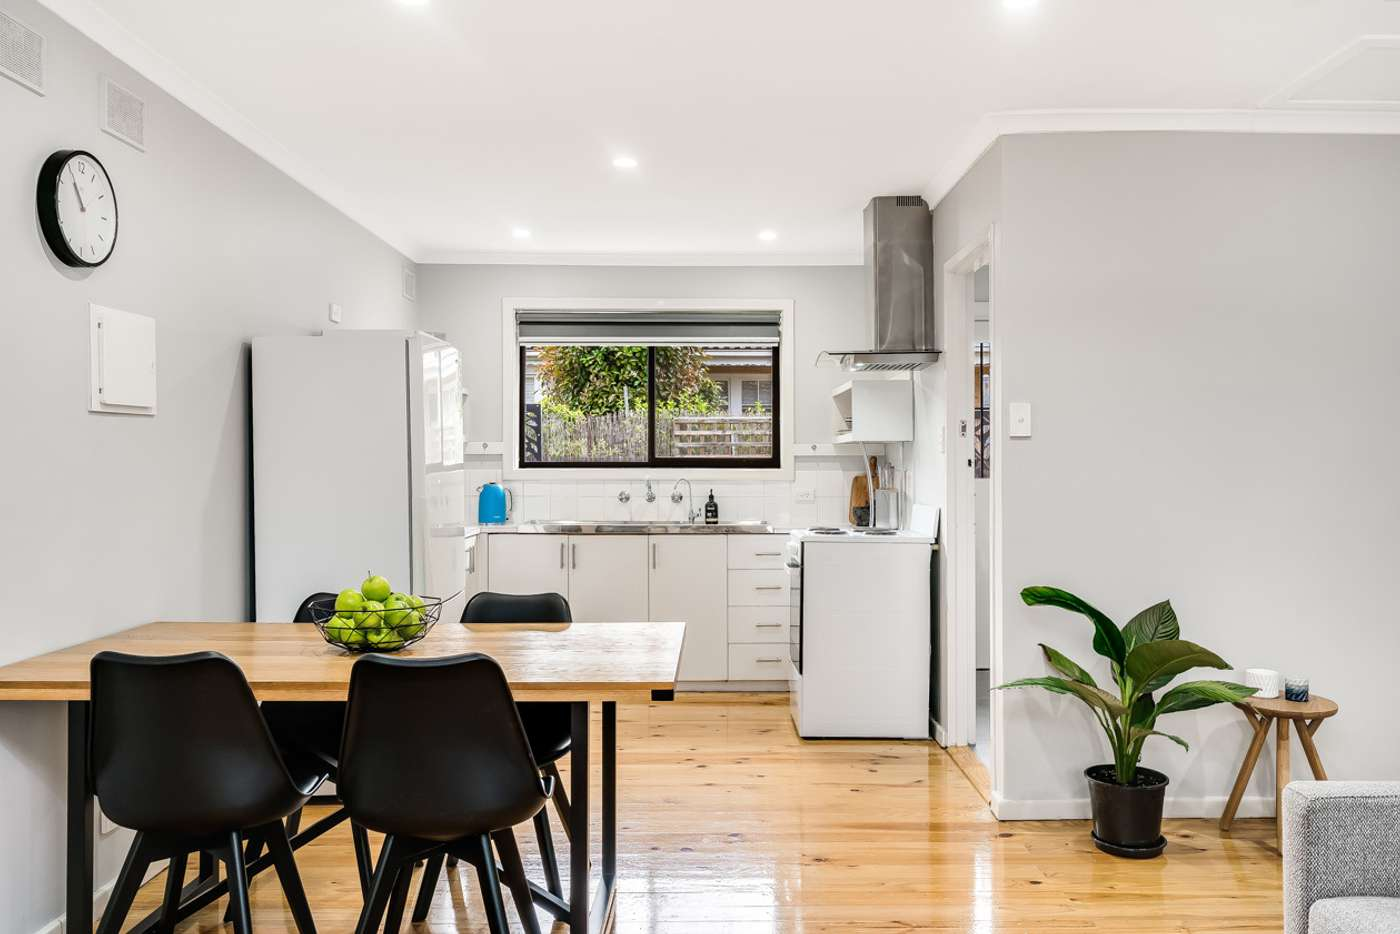 Sixth view of Homely unit listing, 2/28 Cator Street, Glenside SA 5065